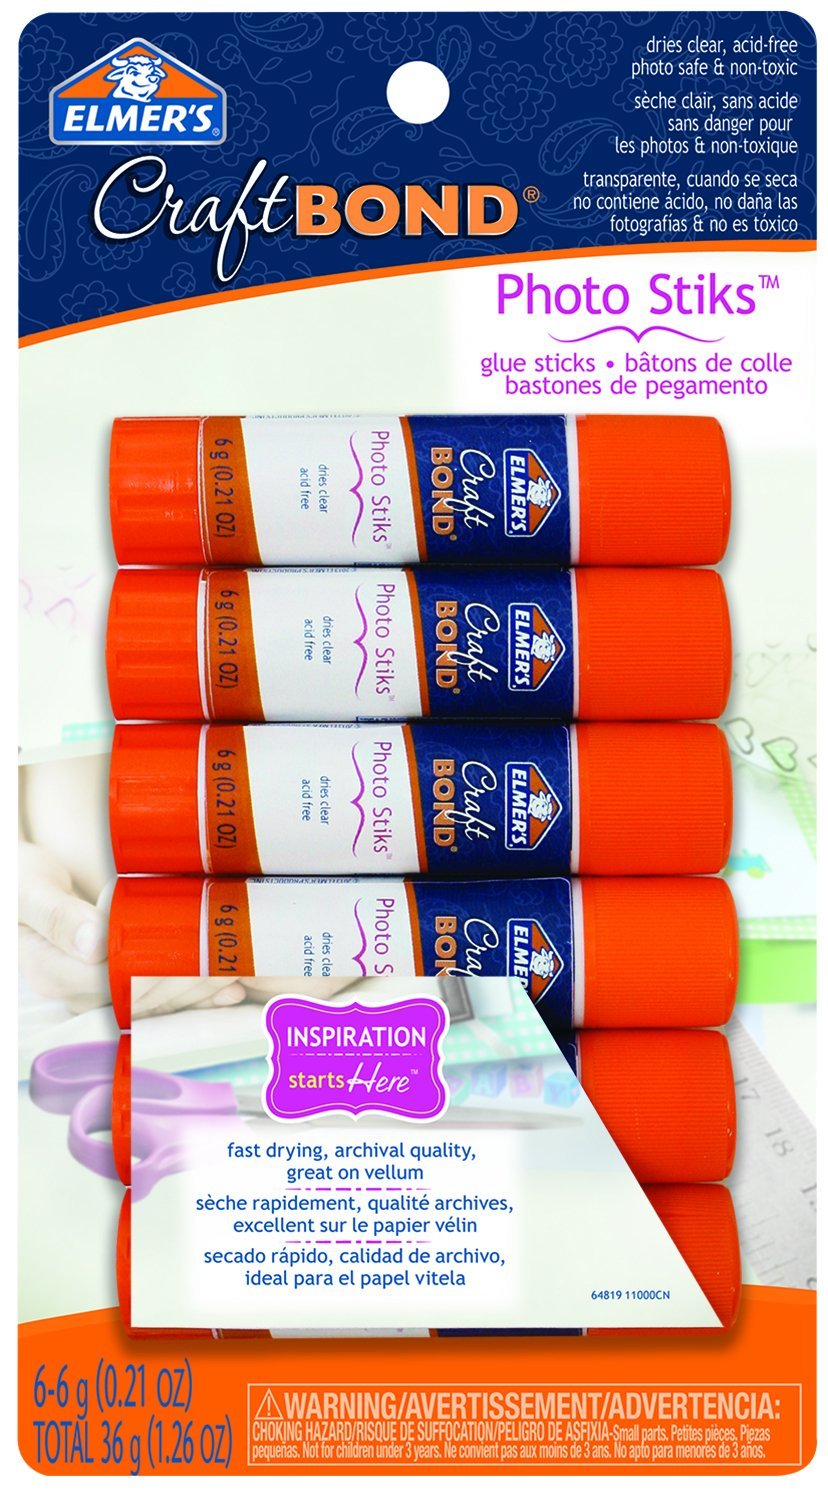 Elmer's CraftBond Photo Stiks Glue Sticks, 6-Count, 6g Each (E64819) Elmer' s